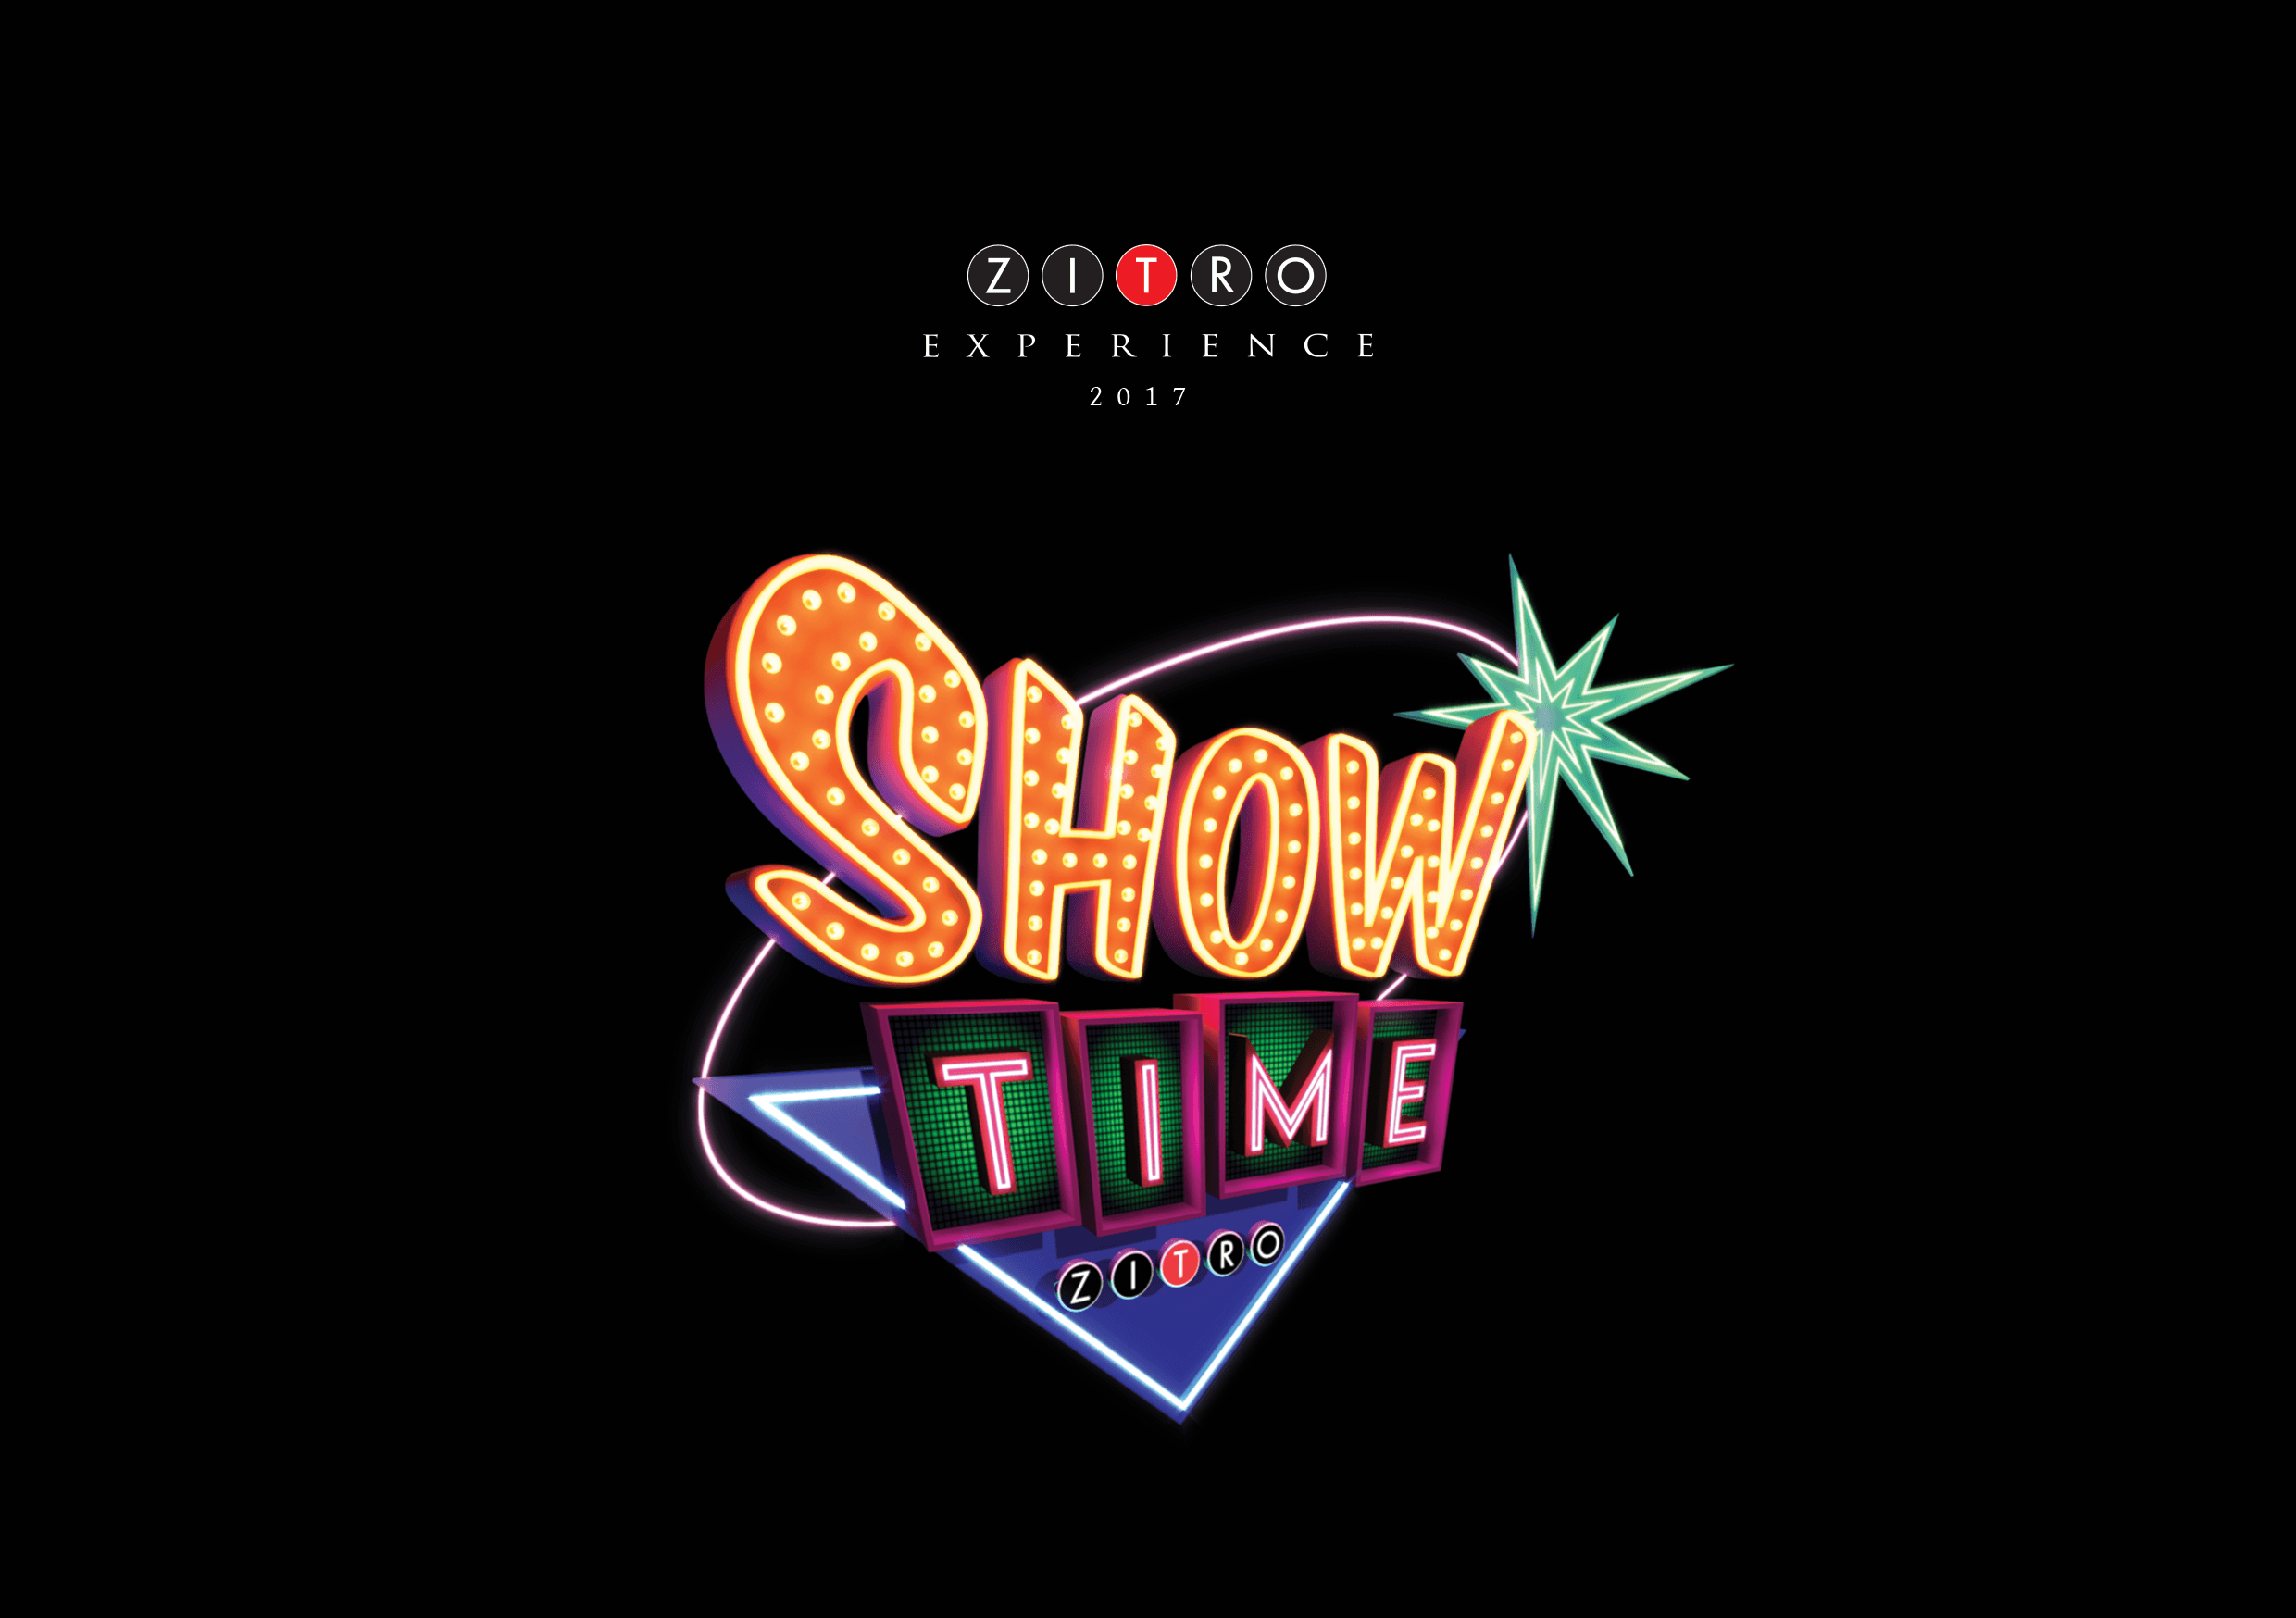 Showtime arrives! Zitro Experience 2017 promises innovation and a great show